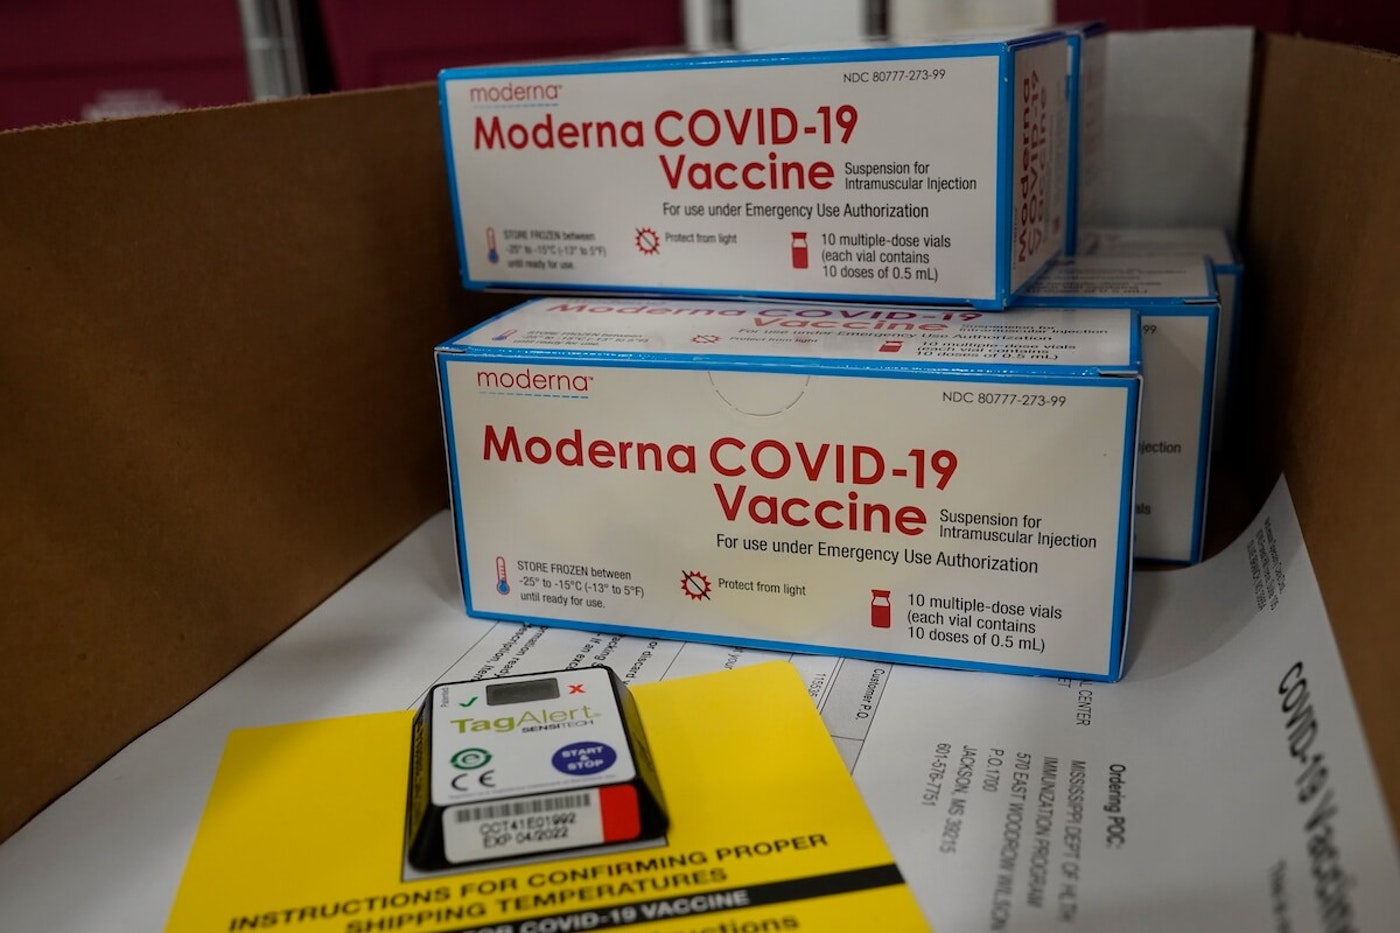 Boxes containing the Moderna COVID-19 vaccine are prepared to be shipped at the McKesson distribution center in Olive Branch, Mississippi. The federal government plans to distribute over the coming week a total of 7.9 million doses of vaccines from Moderna and Pfizer Inc. (Photo by Paul Sancya - Pool/Getty Images)